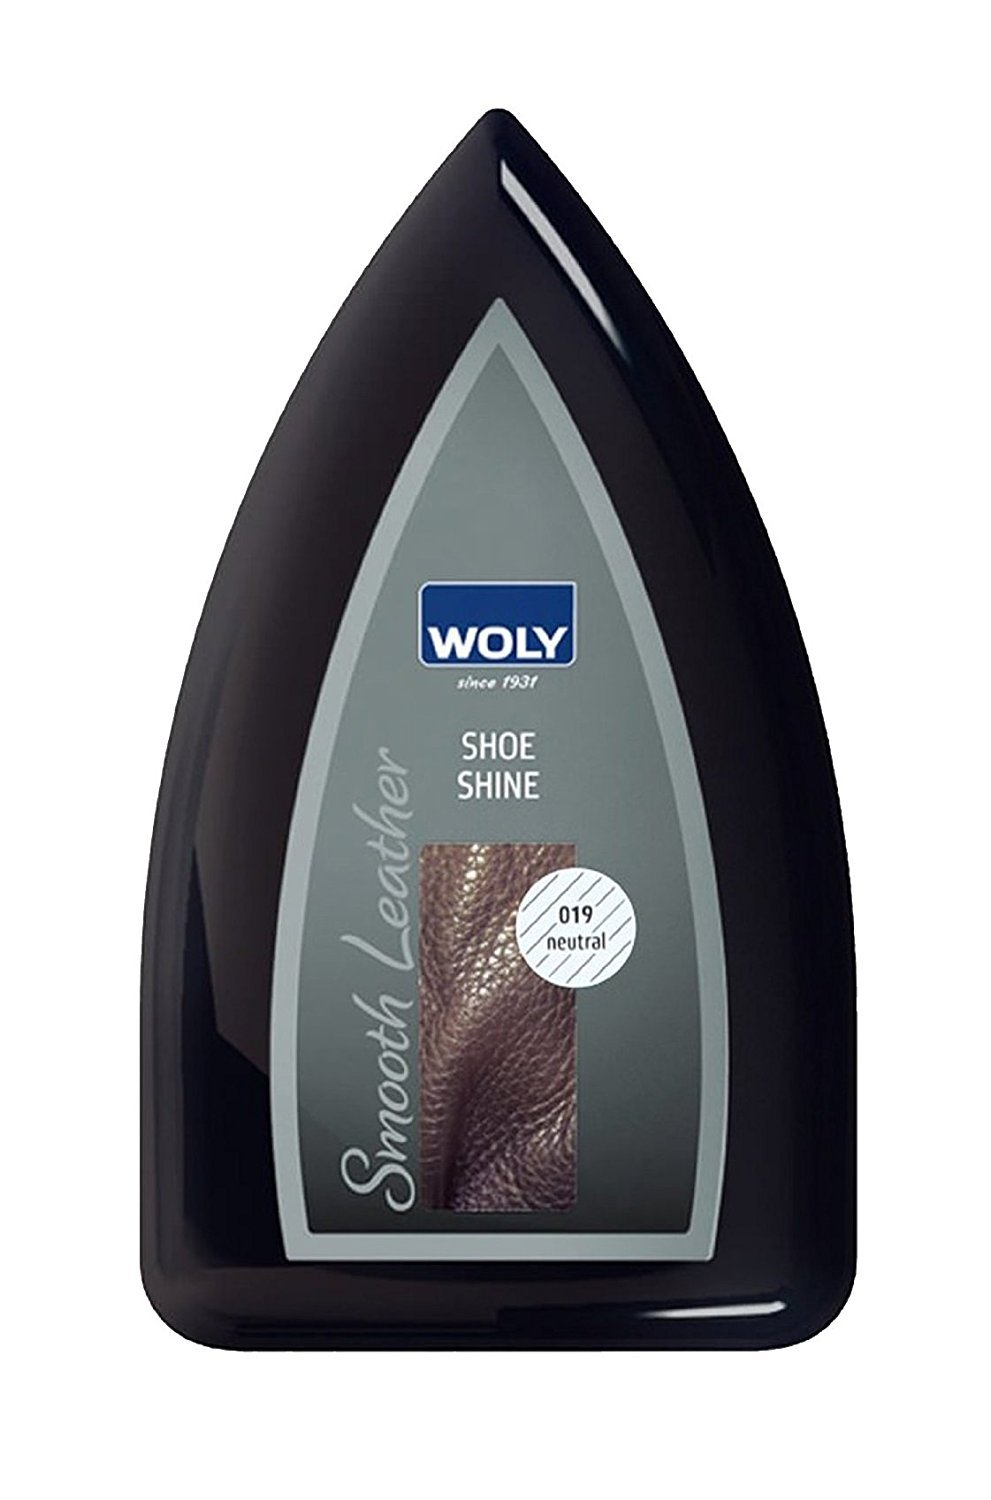 Woly Neutral Travel Shoe Shine Sponge.Glossy Shine for Designer Shoes. Made in Germany. Small size for traveling.